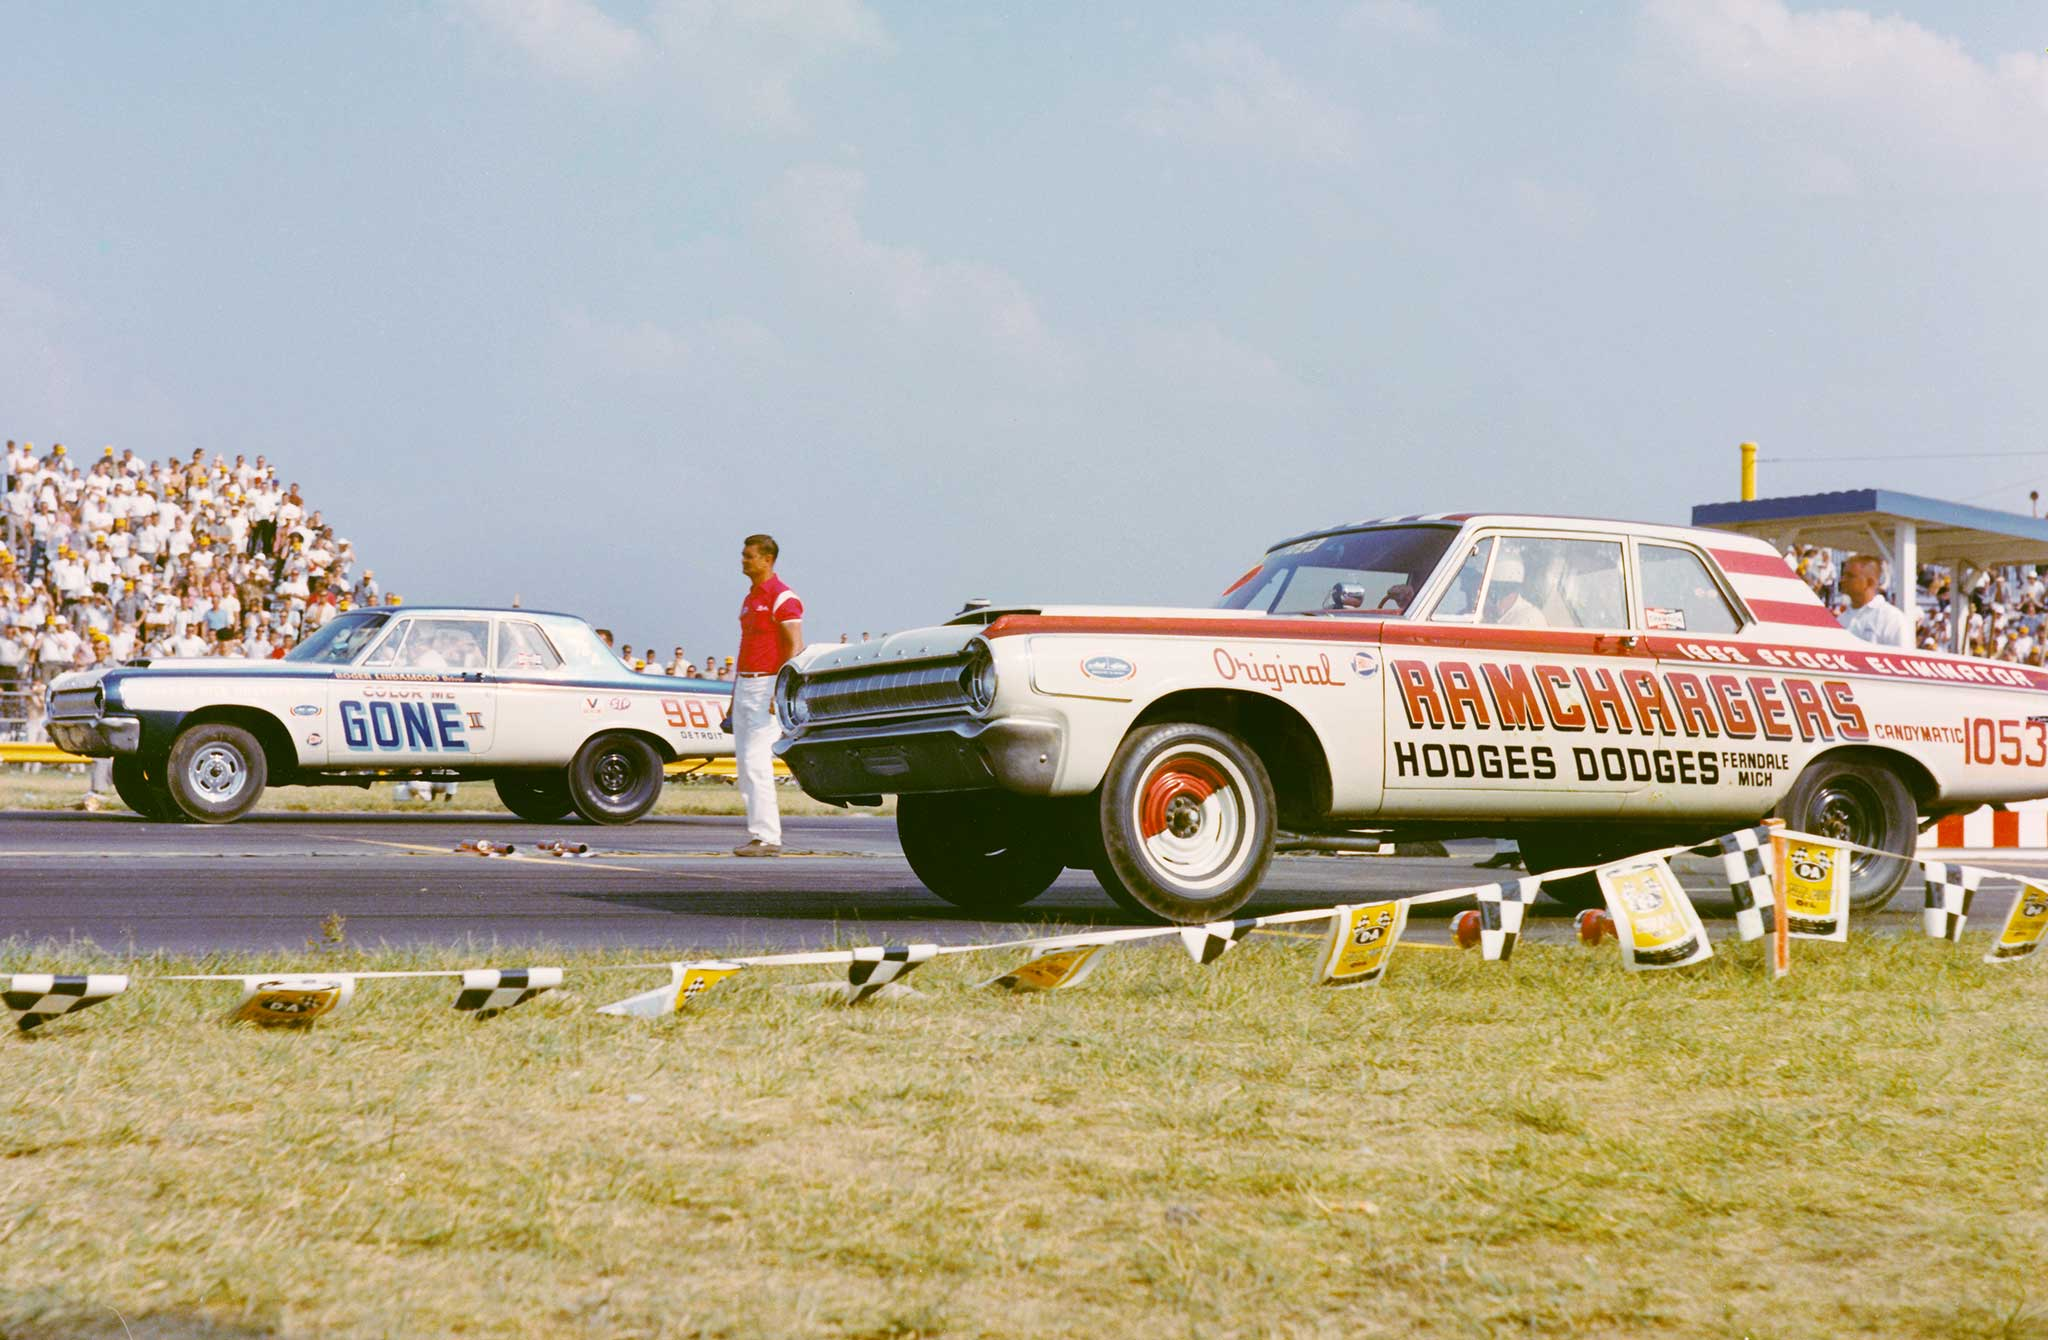 The Ramchargers was an afterhours drag-racing club comprised of Chrysler's brightest young engineers. Their Dodge Super/Stock dusted all at the 1965 Nationals with scienced-out 426 Hemi power and a Torqueflite transmission. Roger Lindamood's Color Me Gone was heavily influenced by the Ramchargers.